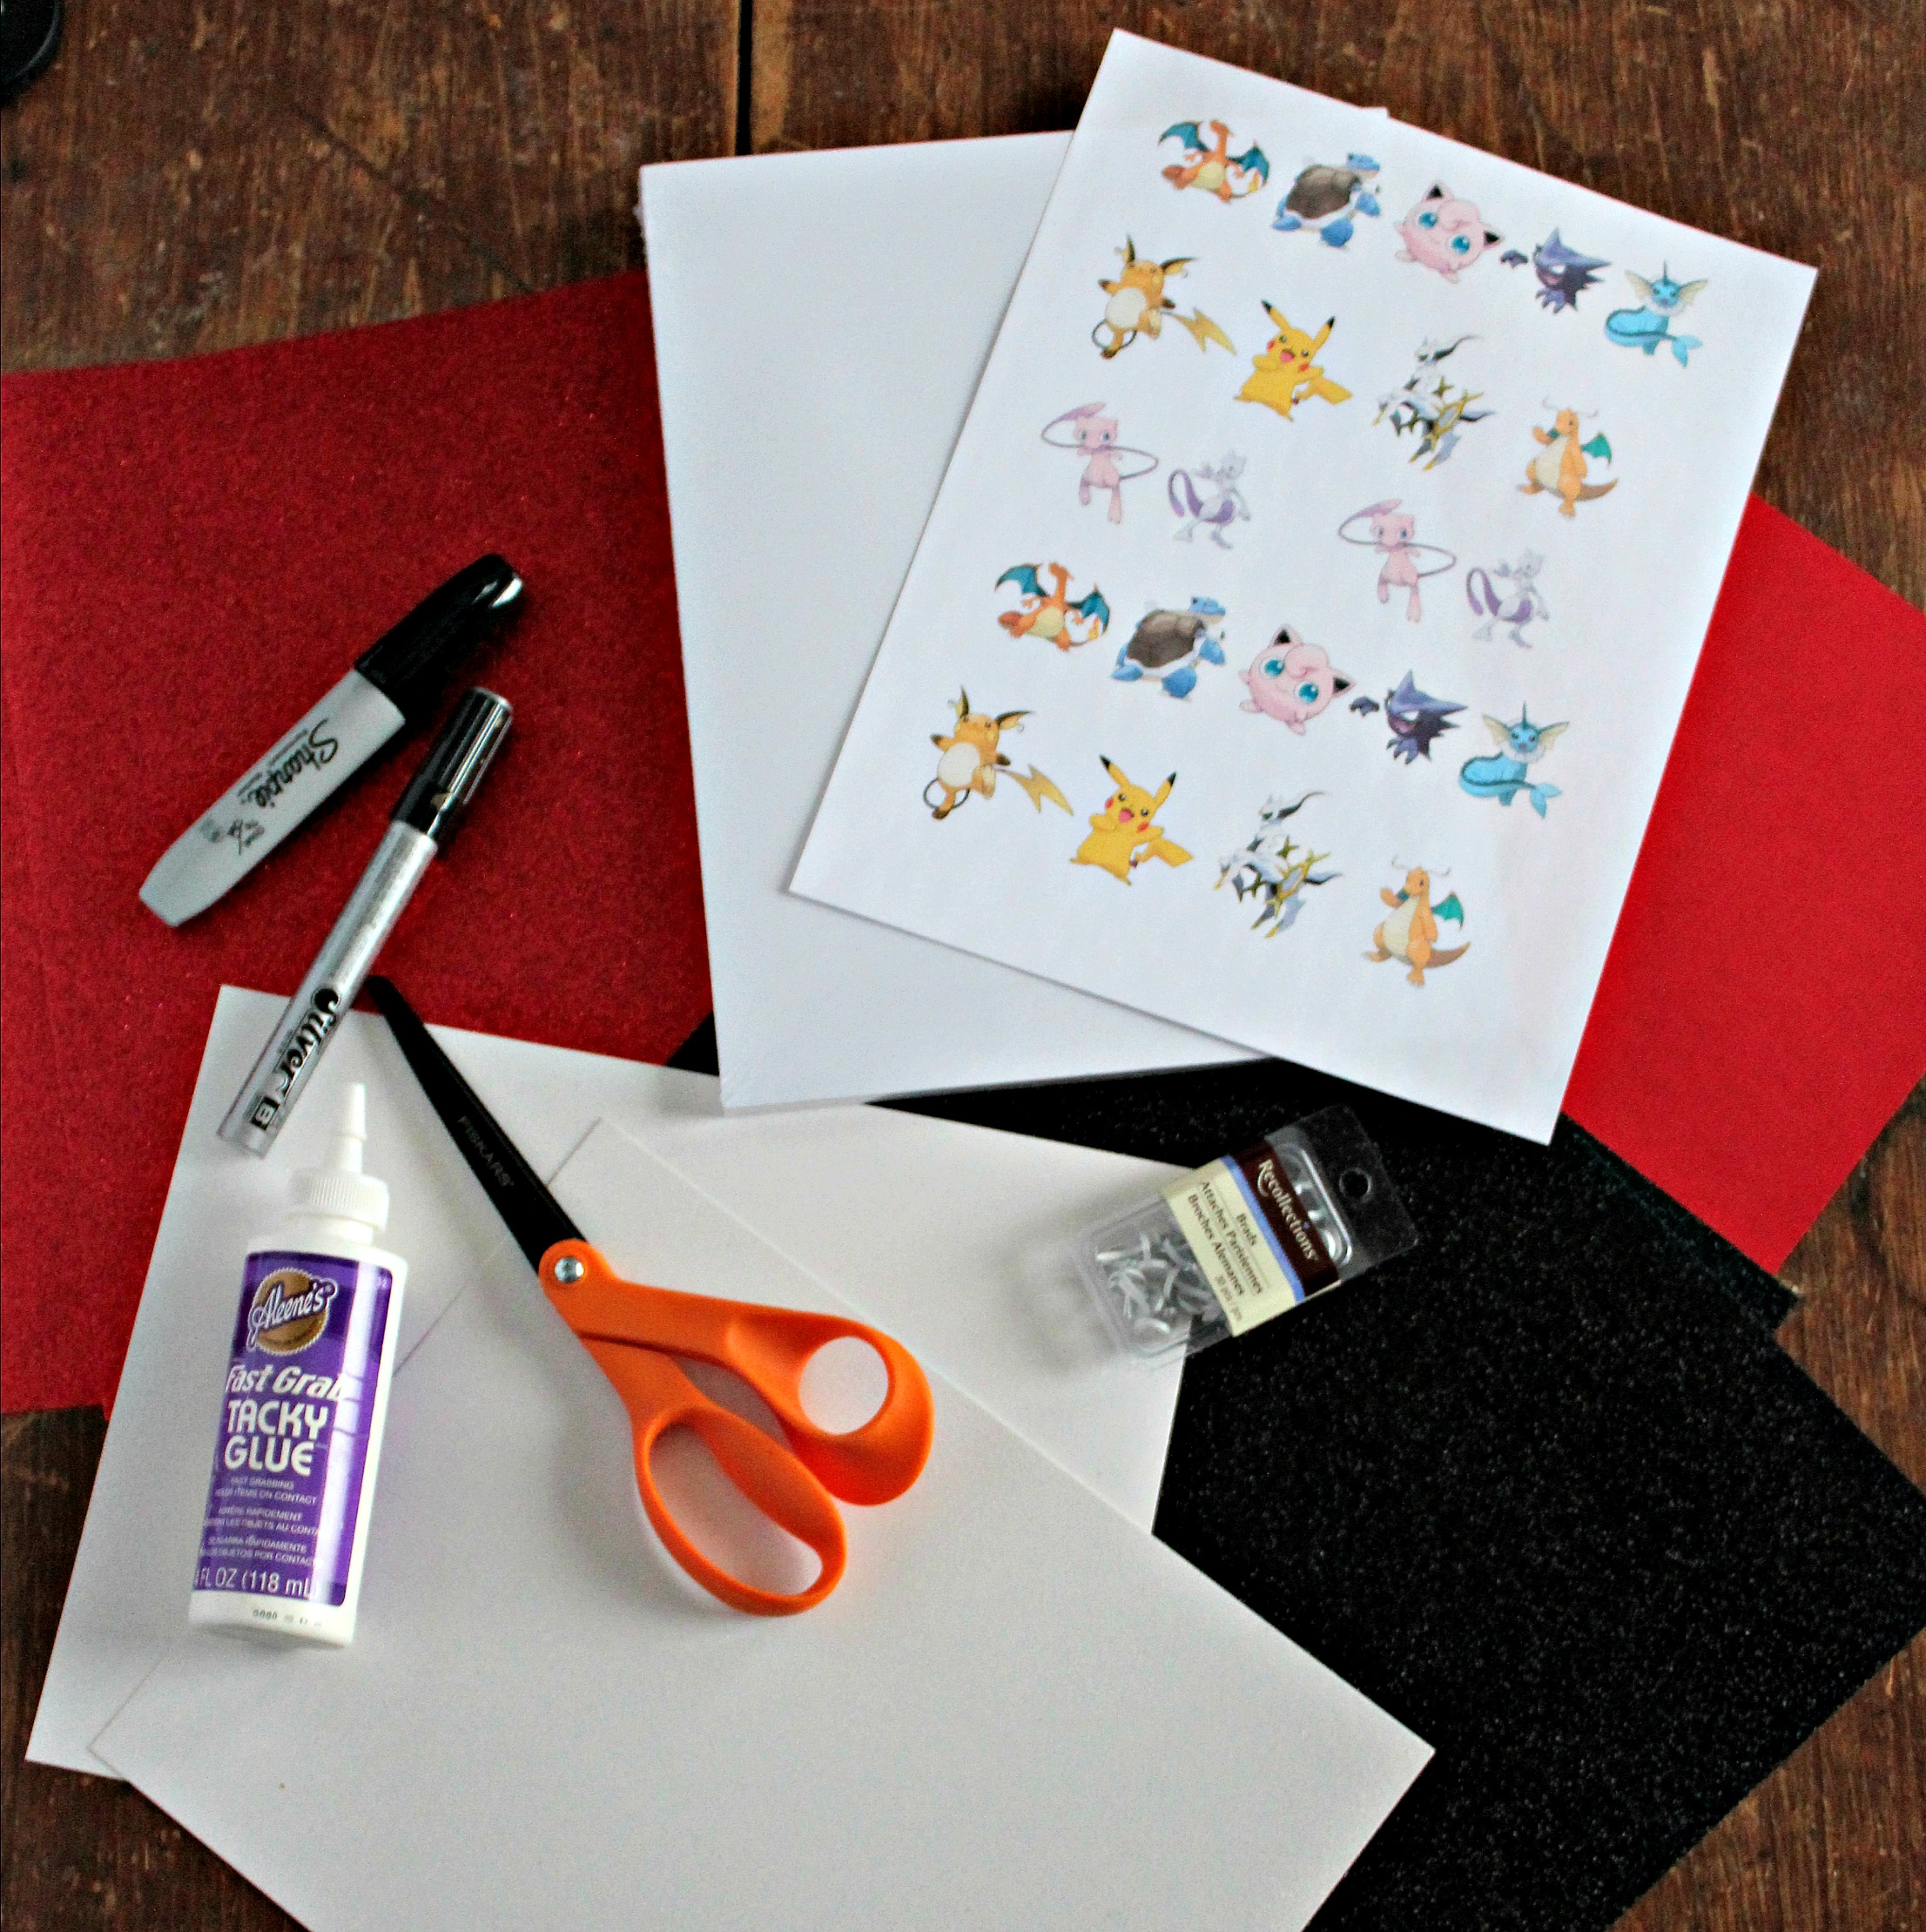 These supplies can come together to make an adorable Pokémon Valentine's Day Card!